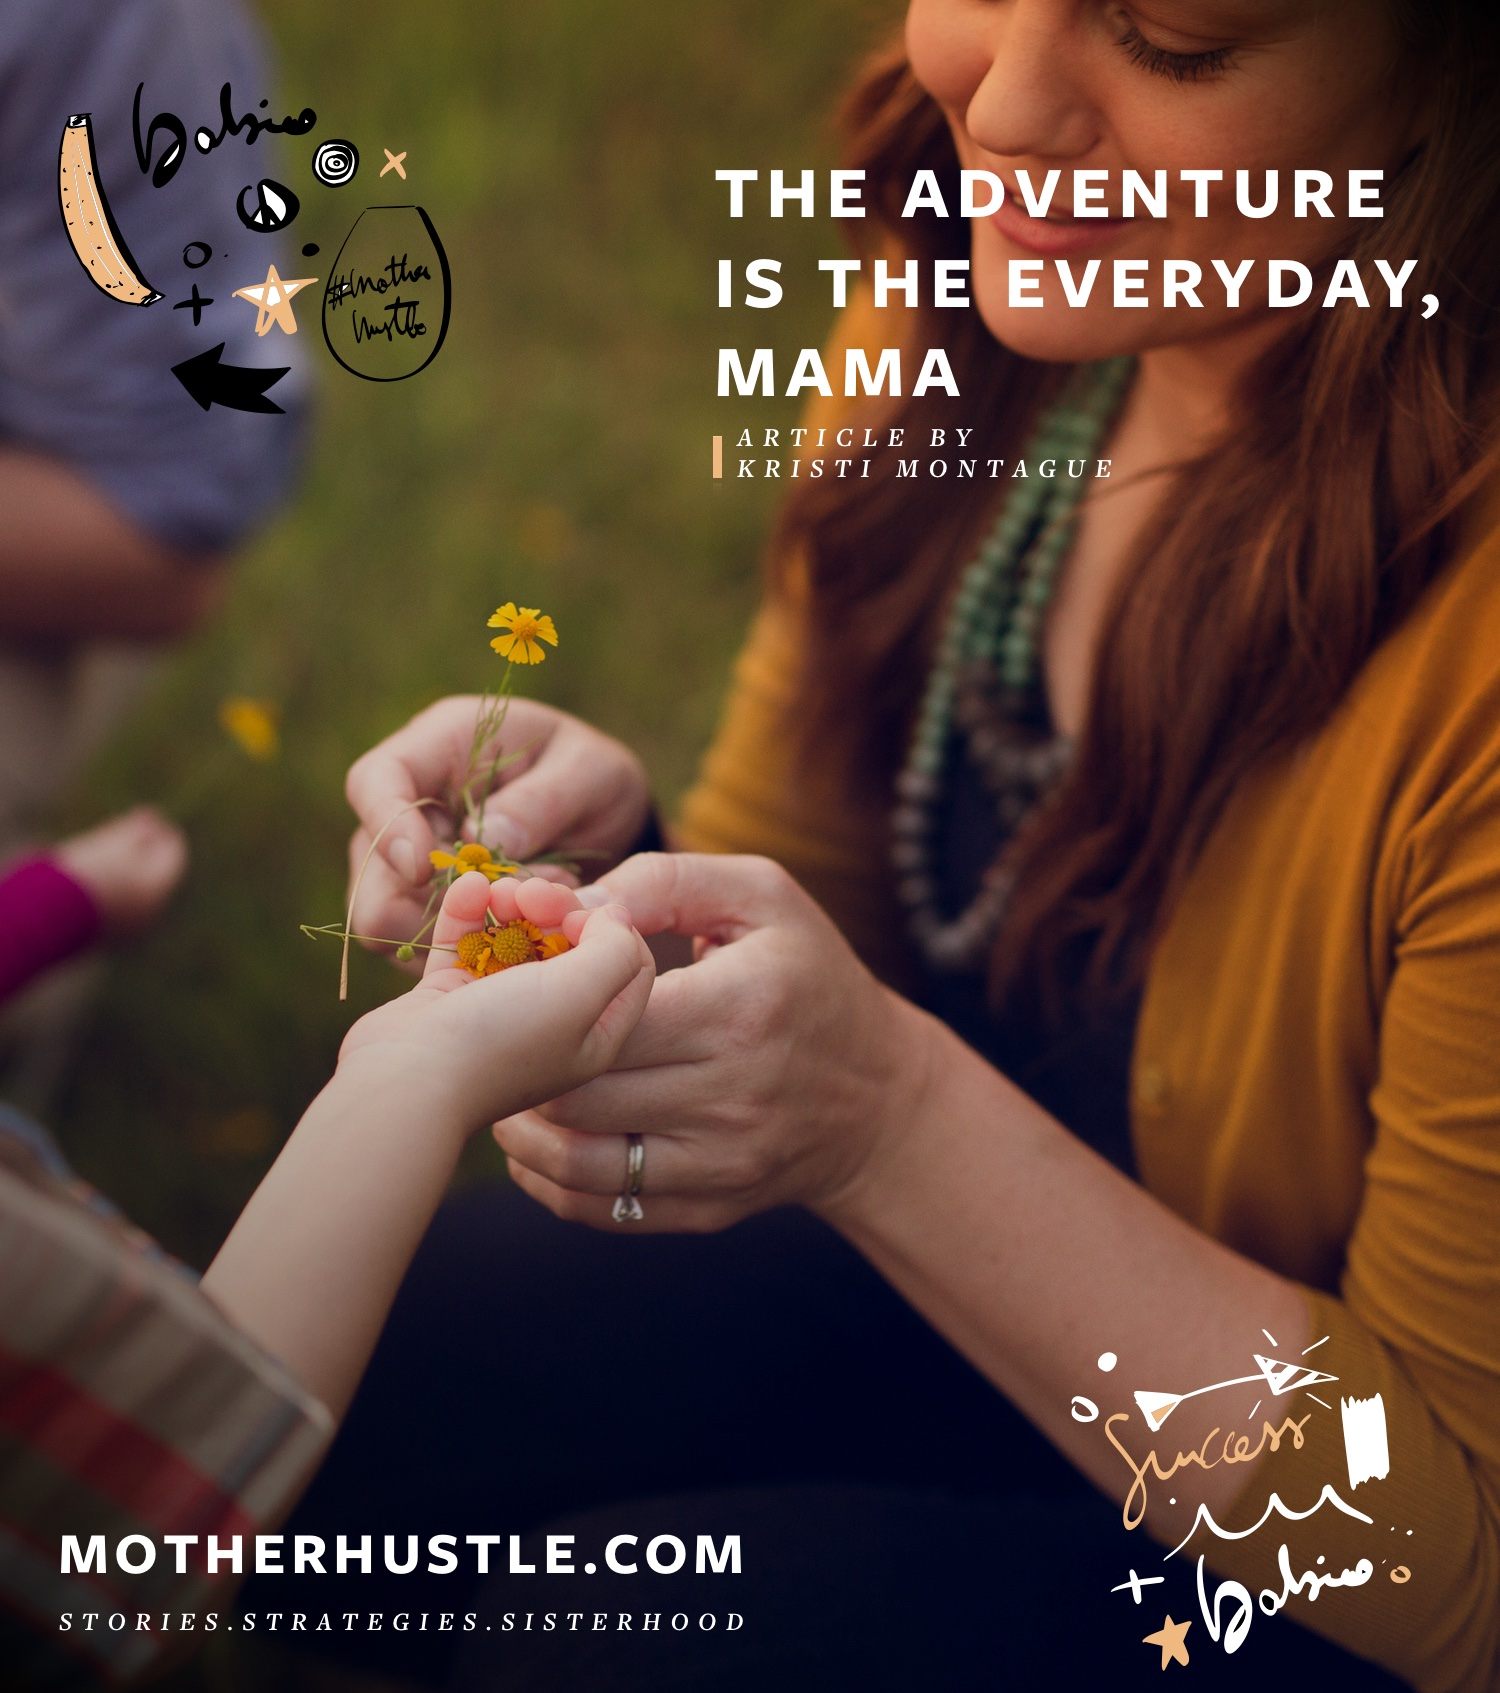 The Adventure Is The Everyday, Mama - by Kristi Montague for MotherHustle